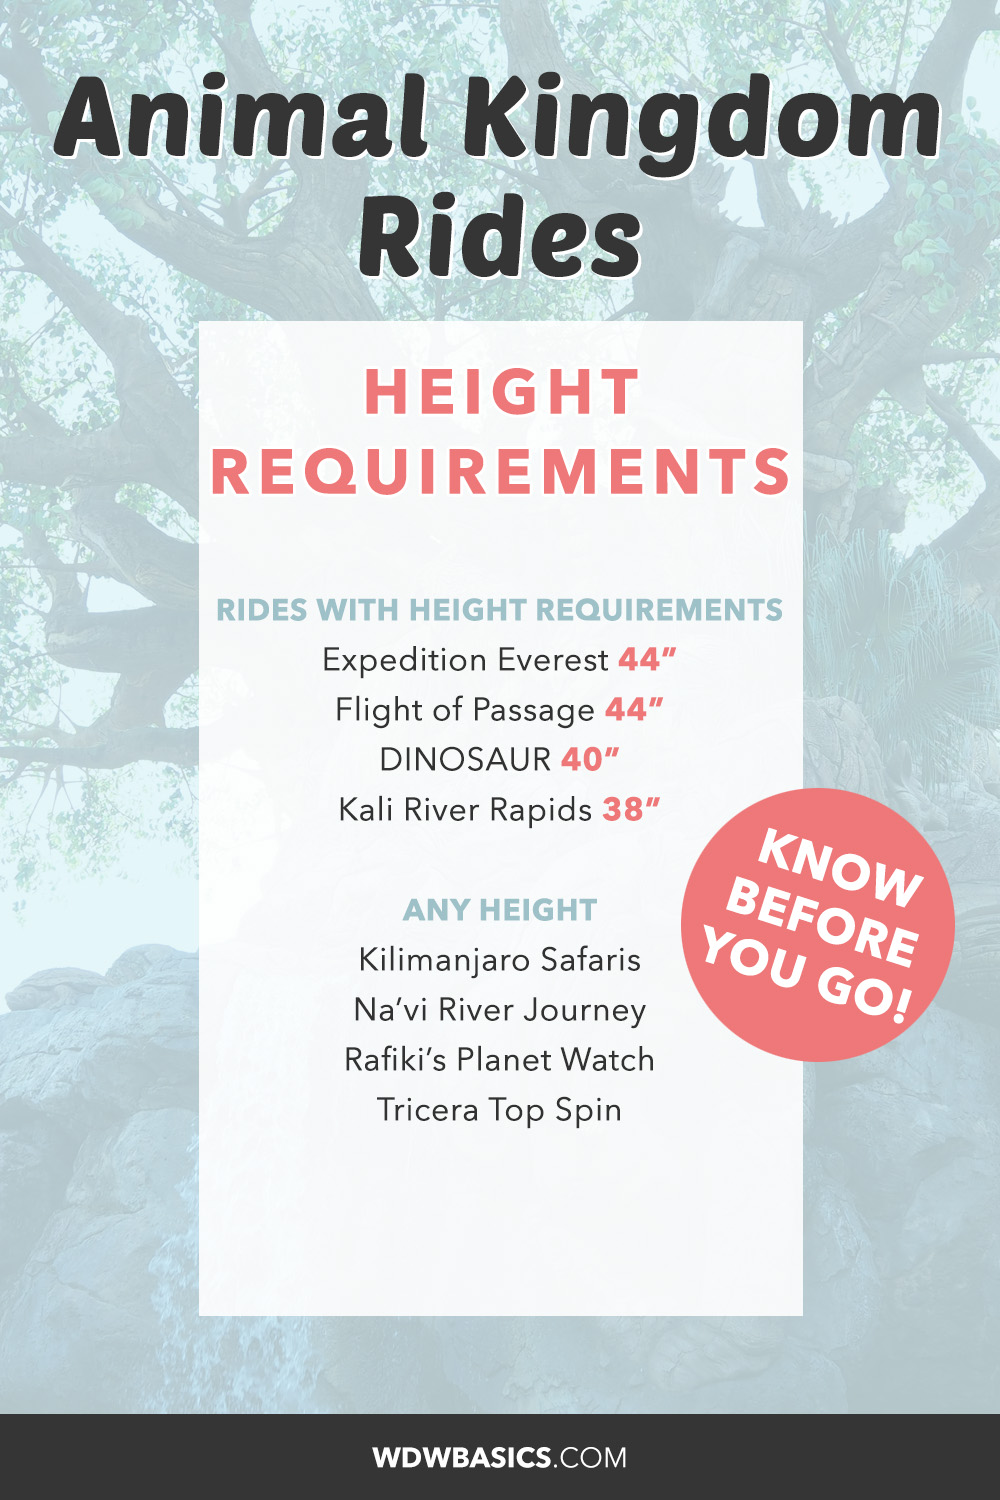 Animal Kingdom Rides height requirements